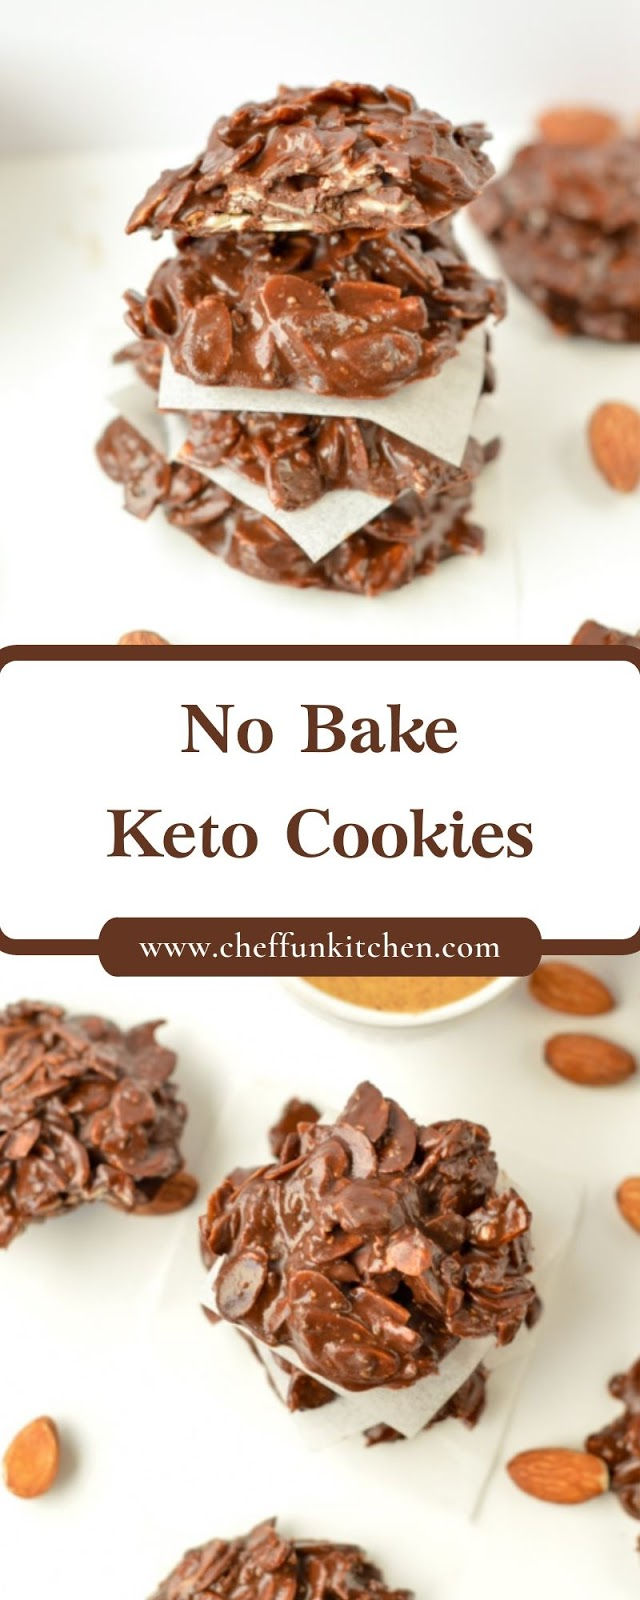 No Bake Keto Cookies